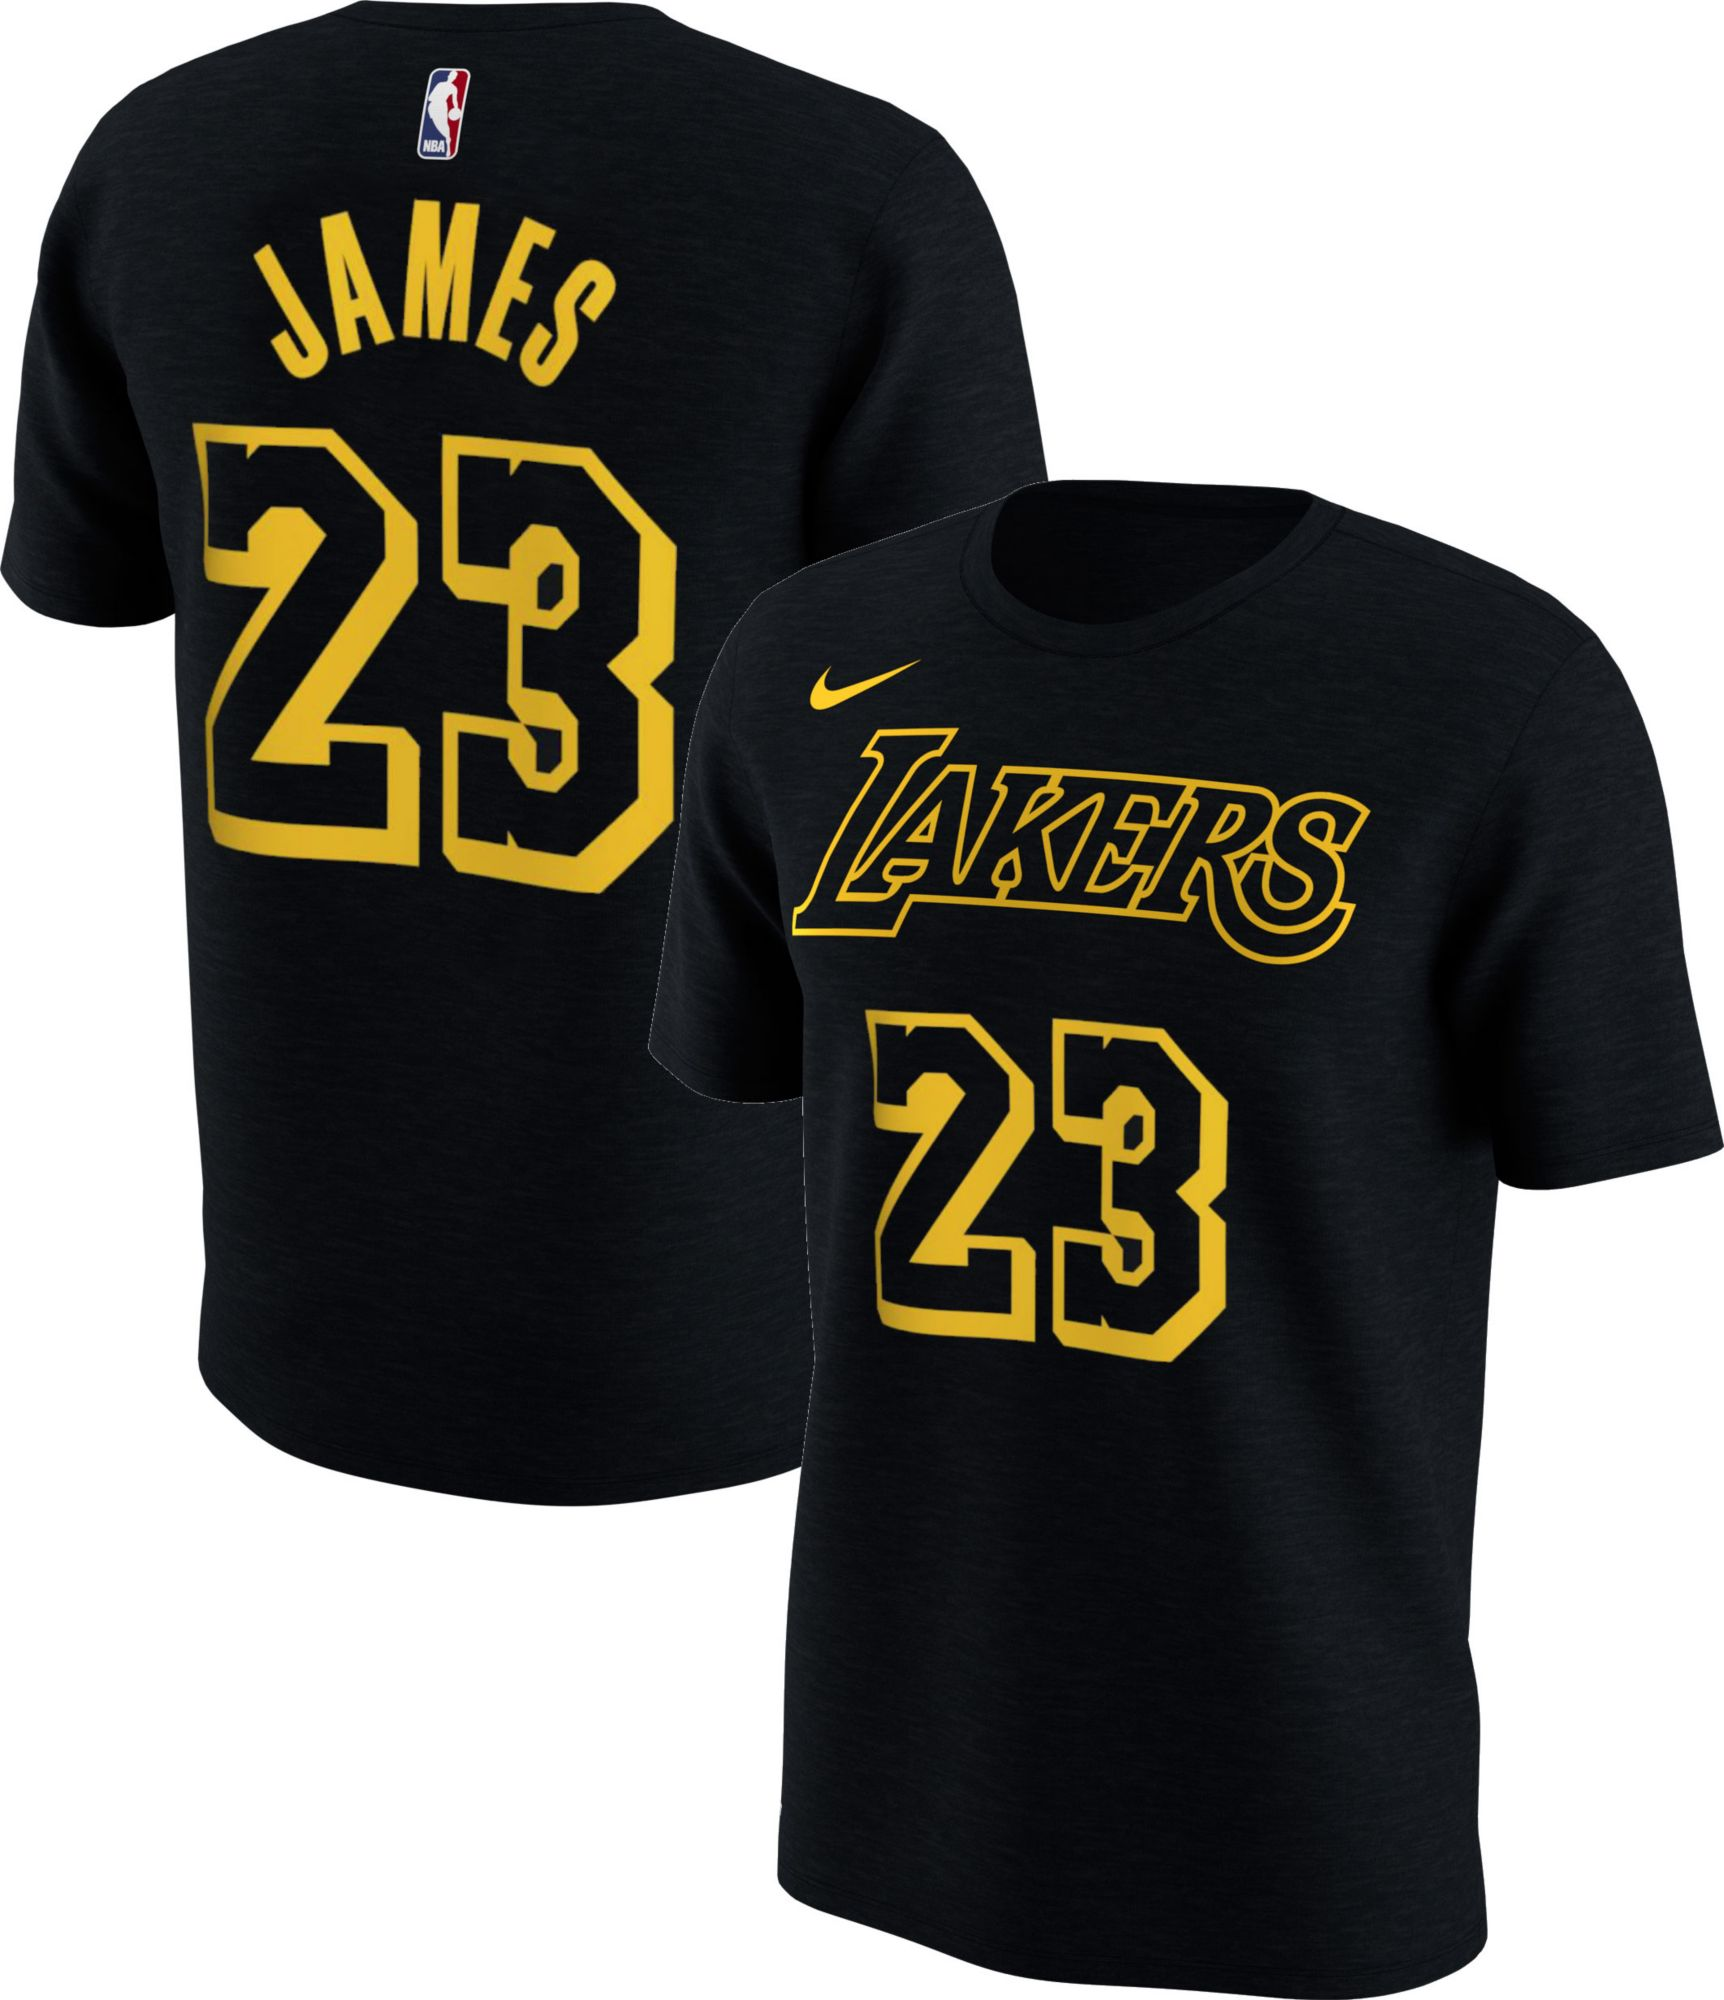 check out a3d04 e81bf Nike Youth Los Angeles Lakers LeBron James Dri-FIT City ...